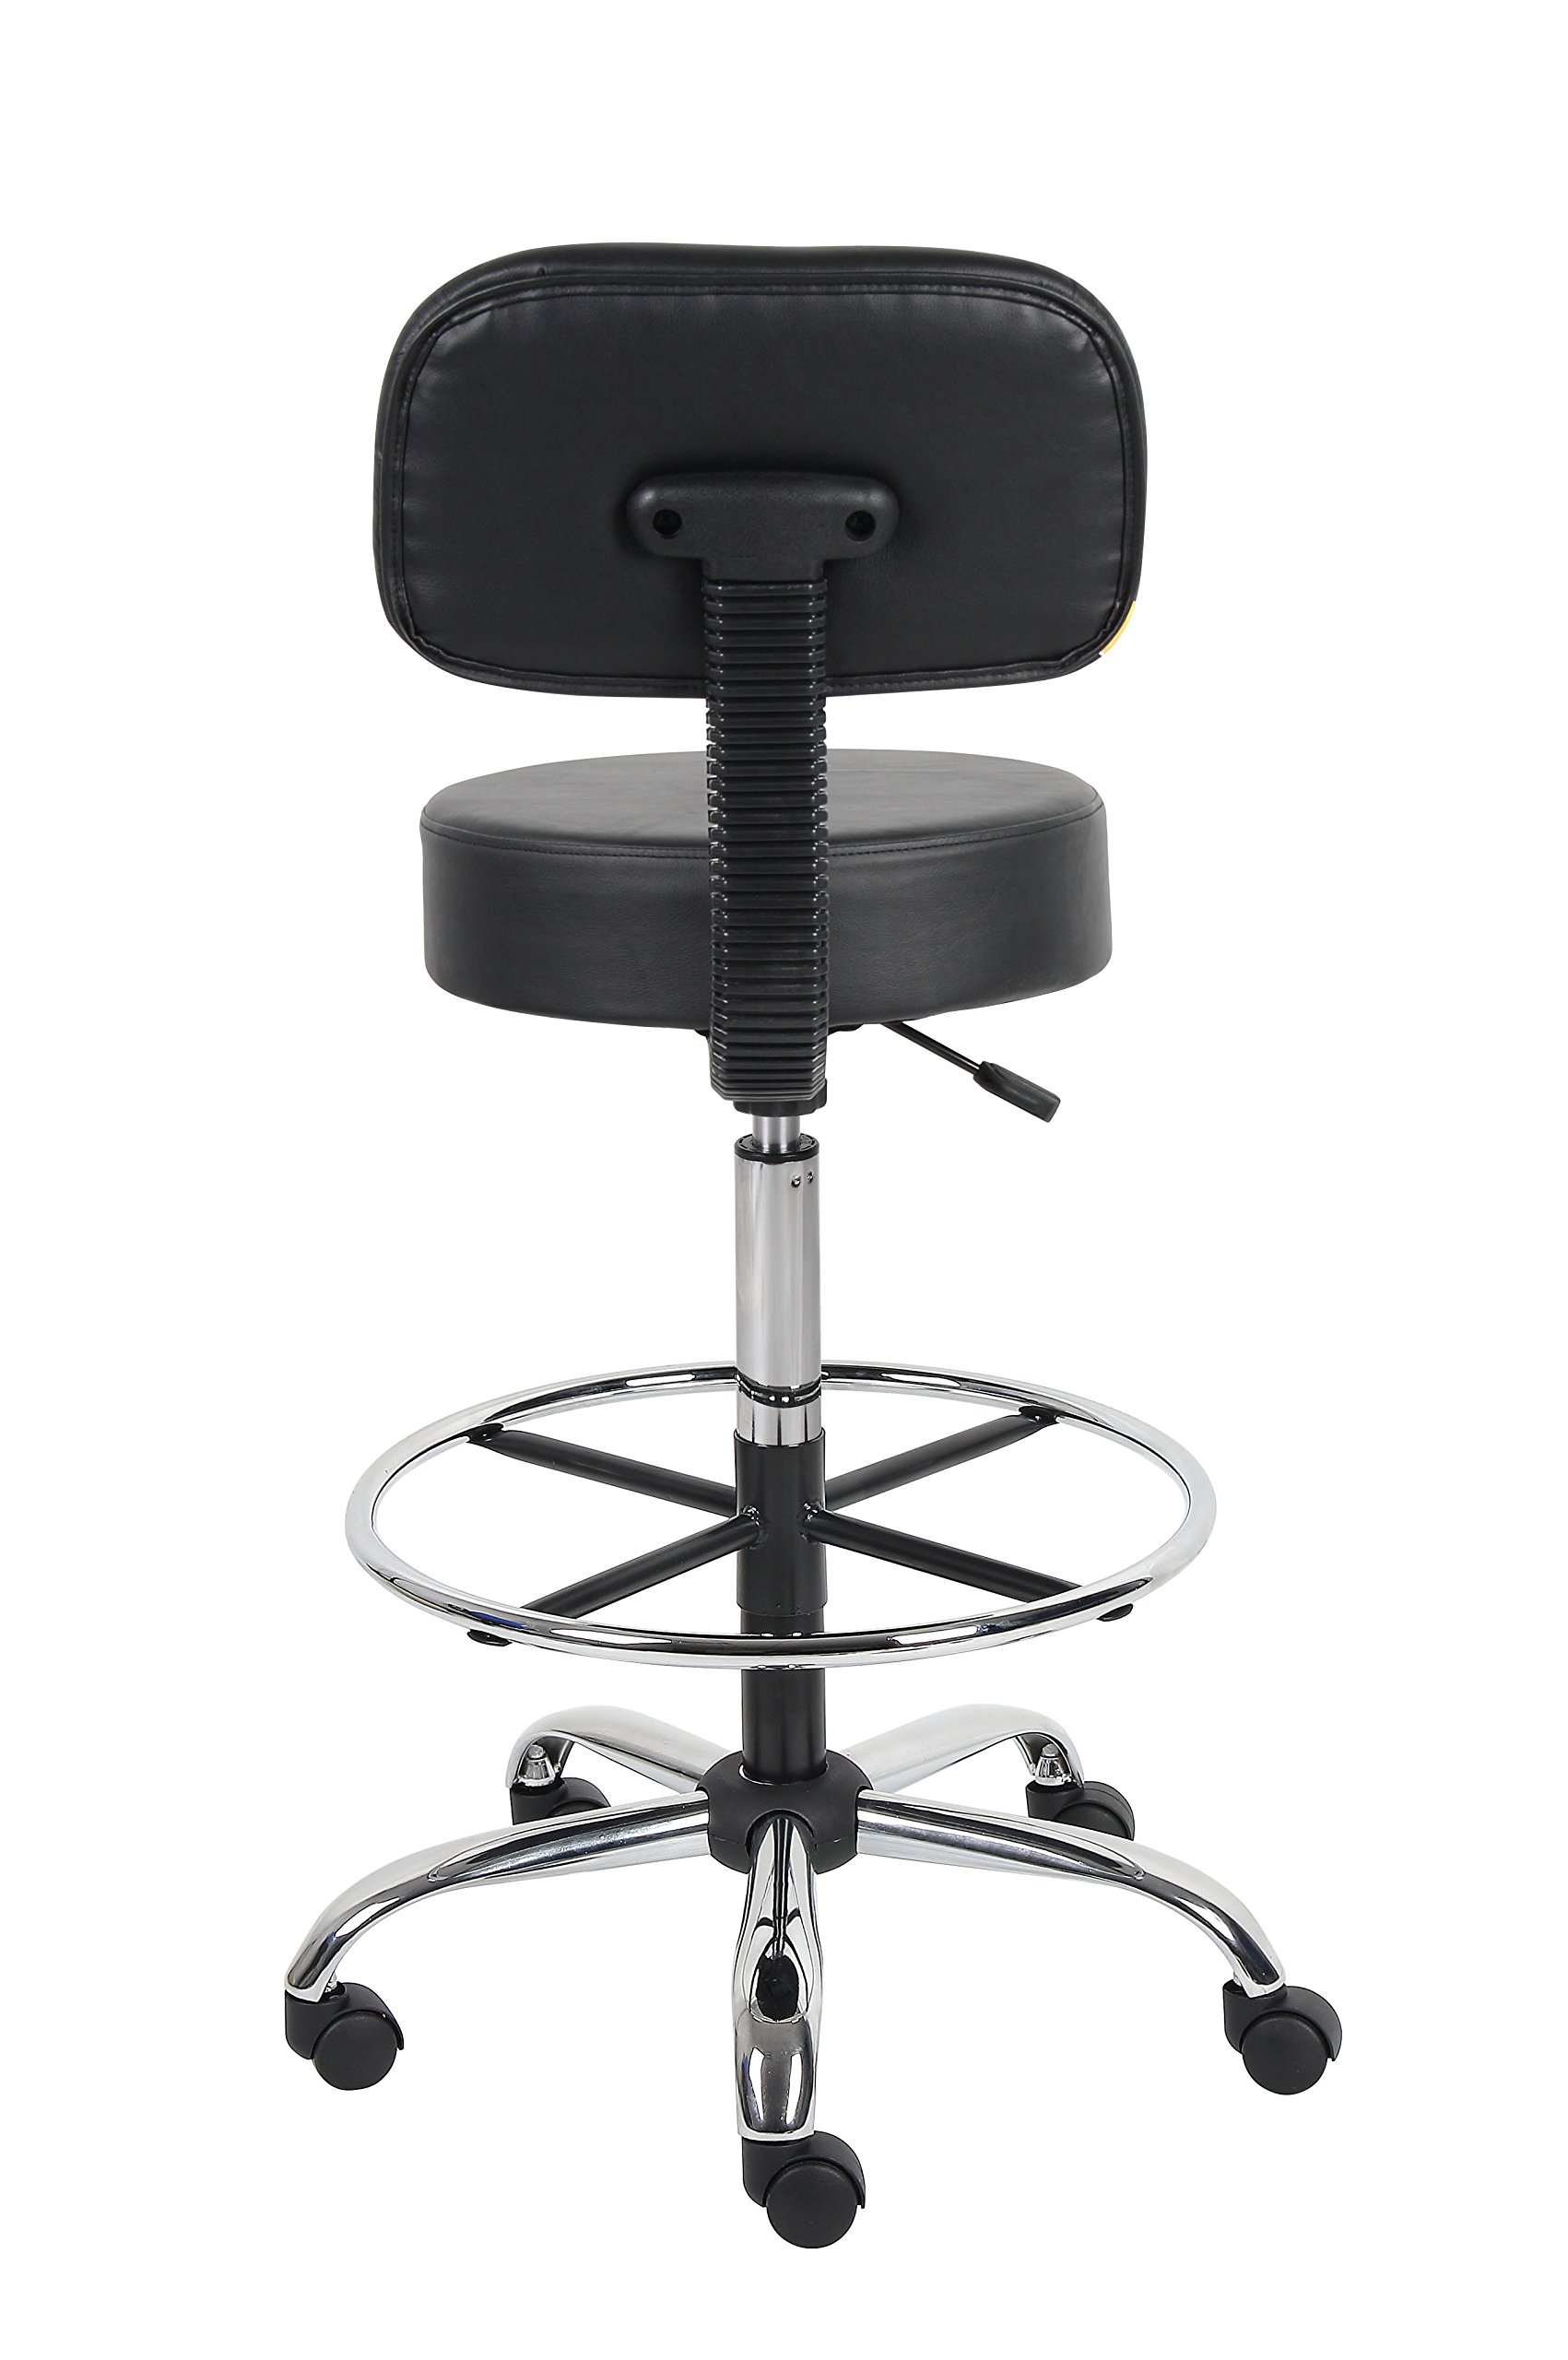 Boss Office Products B16245-BK Be Well Medical Spa Drafting Stool with Back,  Black by Boss Office Products (Image #2)